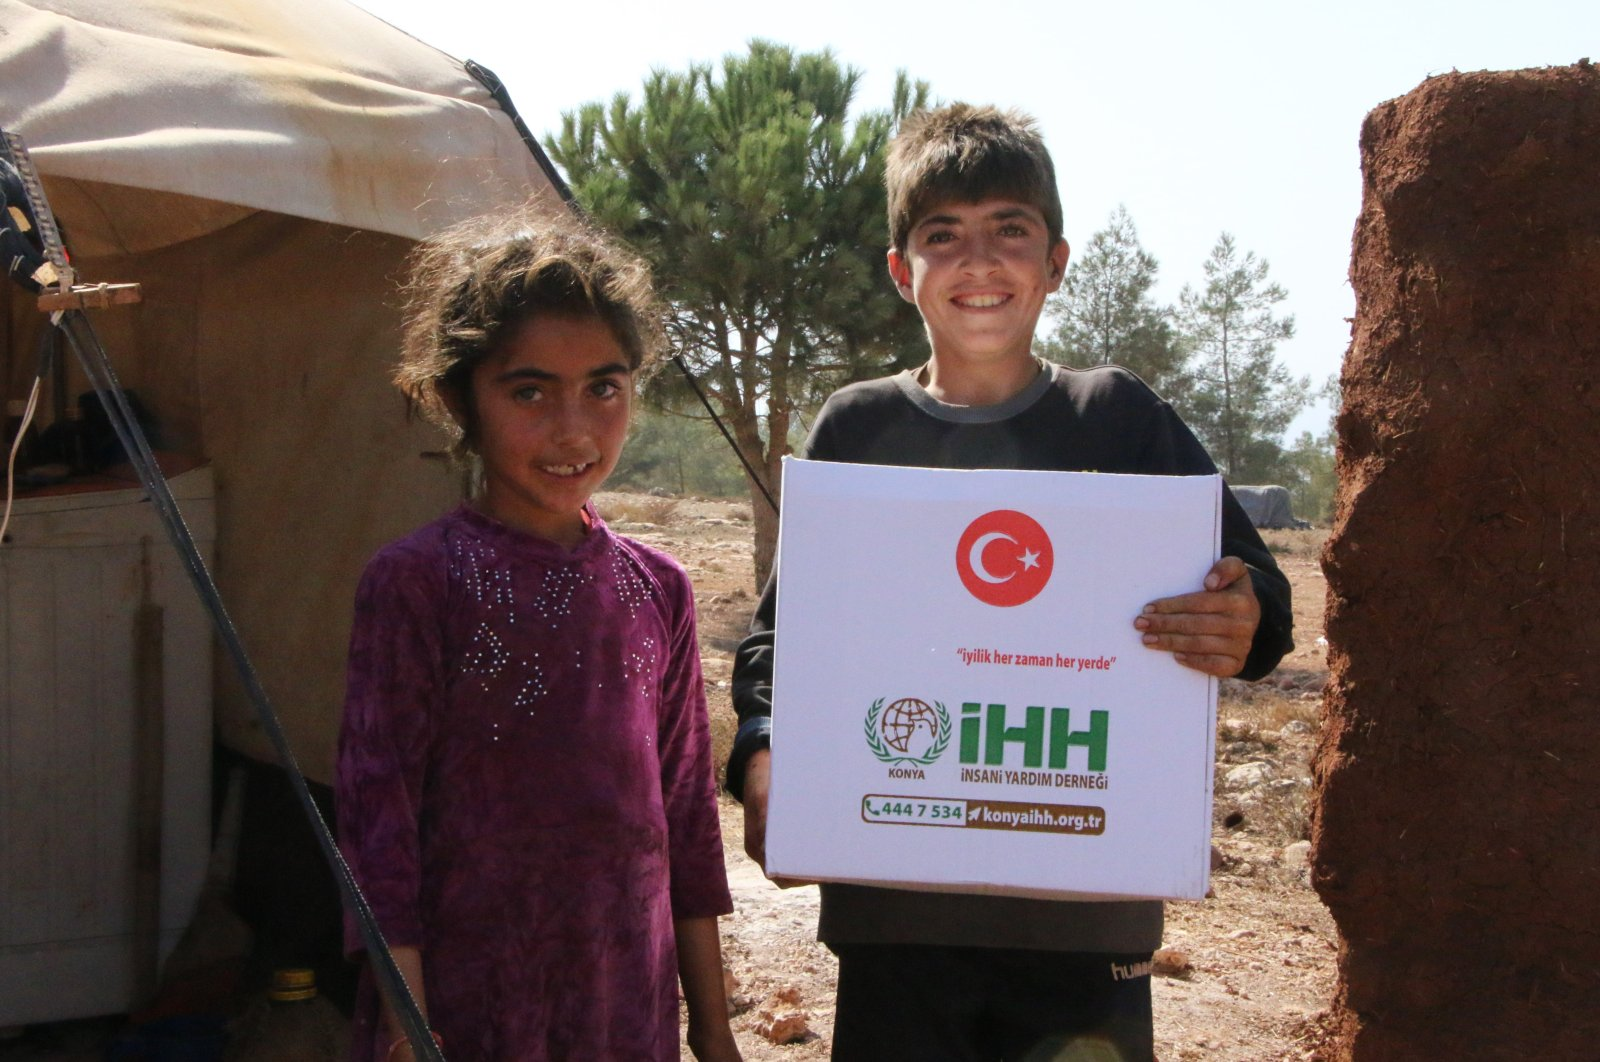 Syrian children pose with a box of aid delivered by Turkey's Humanitarian Relief Foundation (IHH), in this photo provided by the IHH on Nov. 26, 2020. (Photo courtesy of IHH via AA)